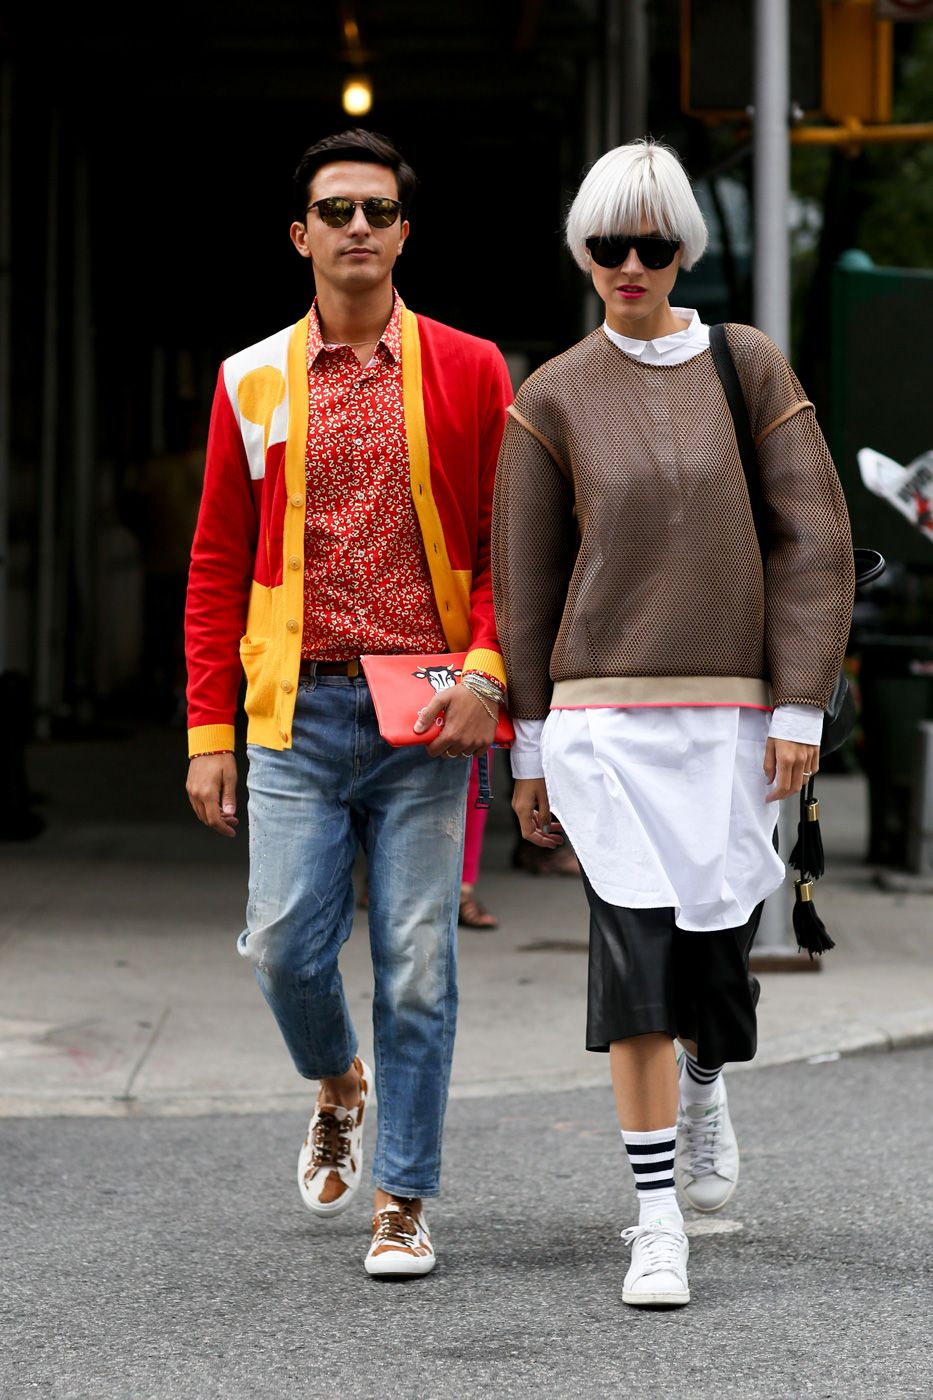 The Best Street Fashion From NYFW: 85 Must-SeeLooks